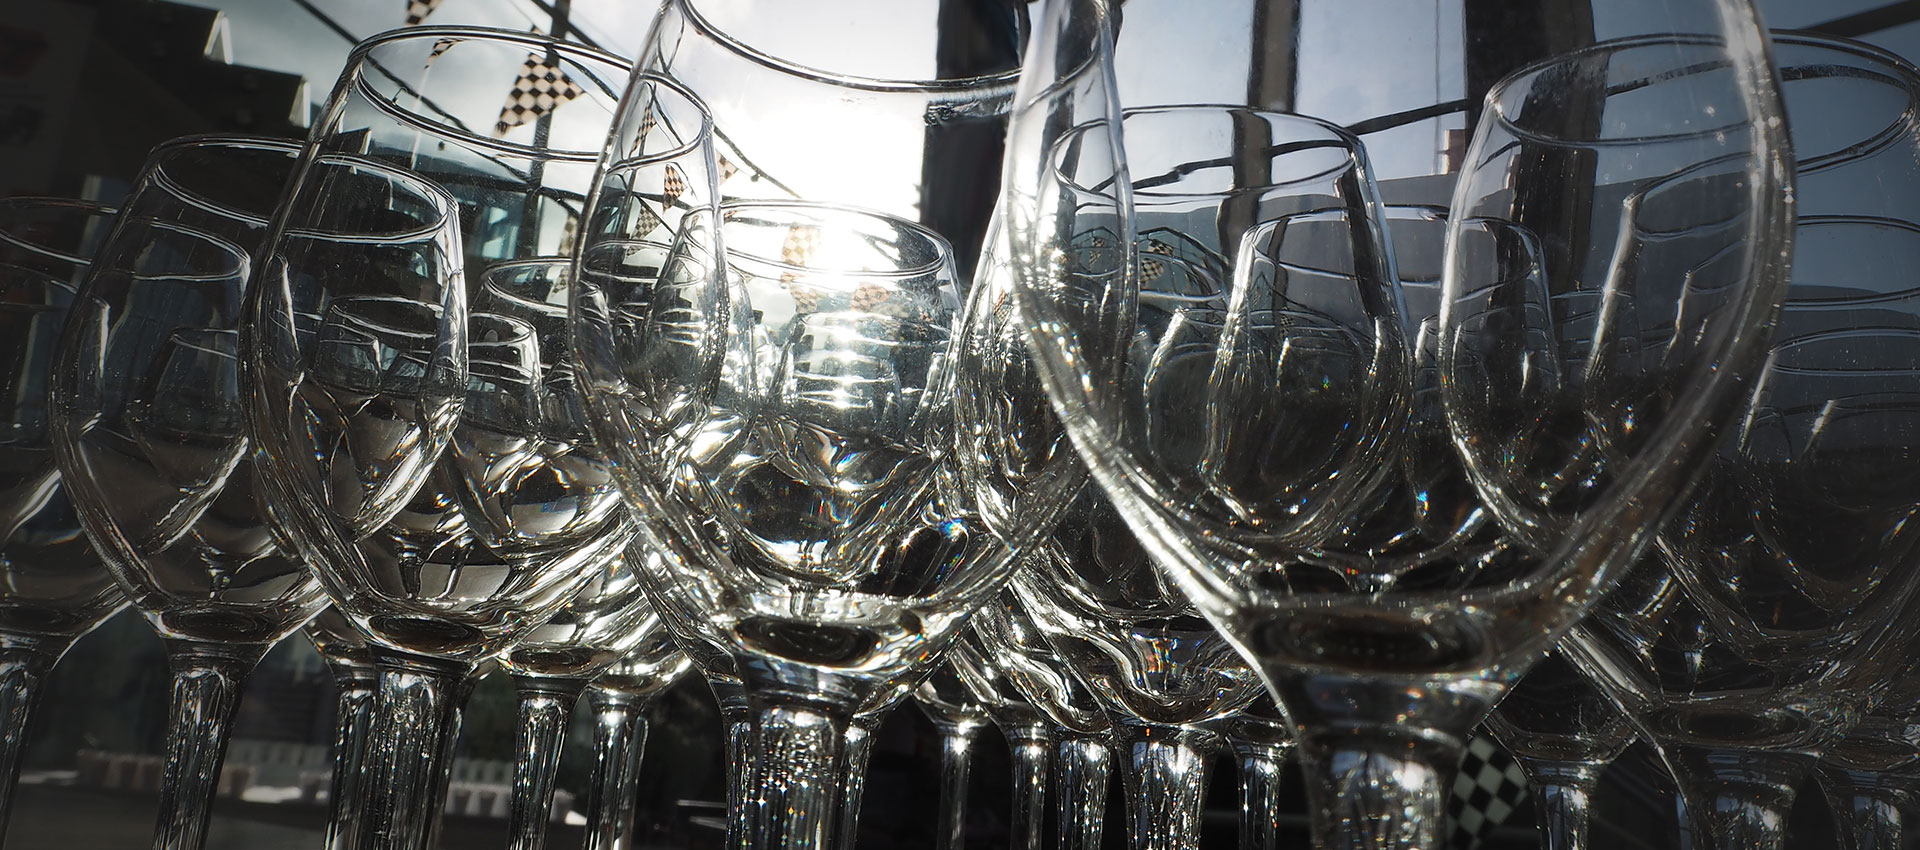 Empty wine glasses ready for a function